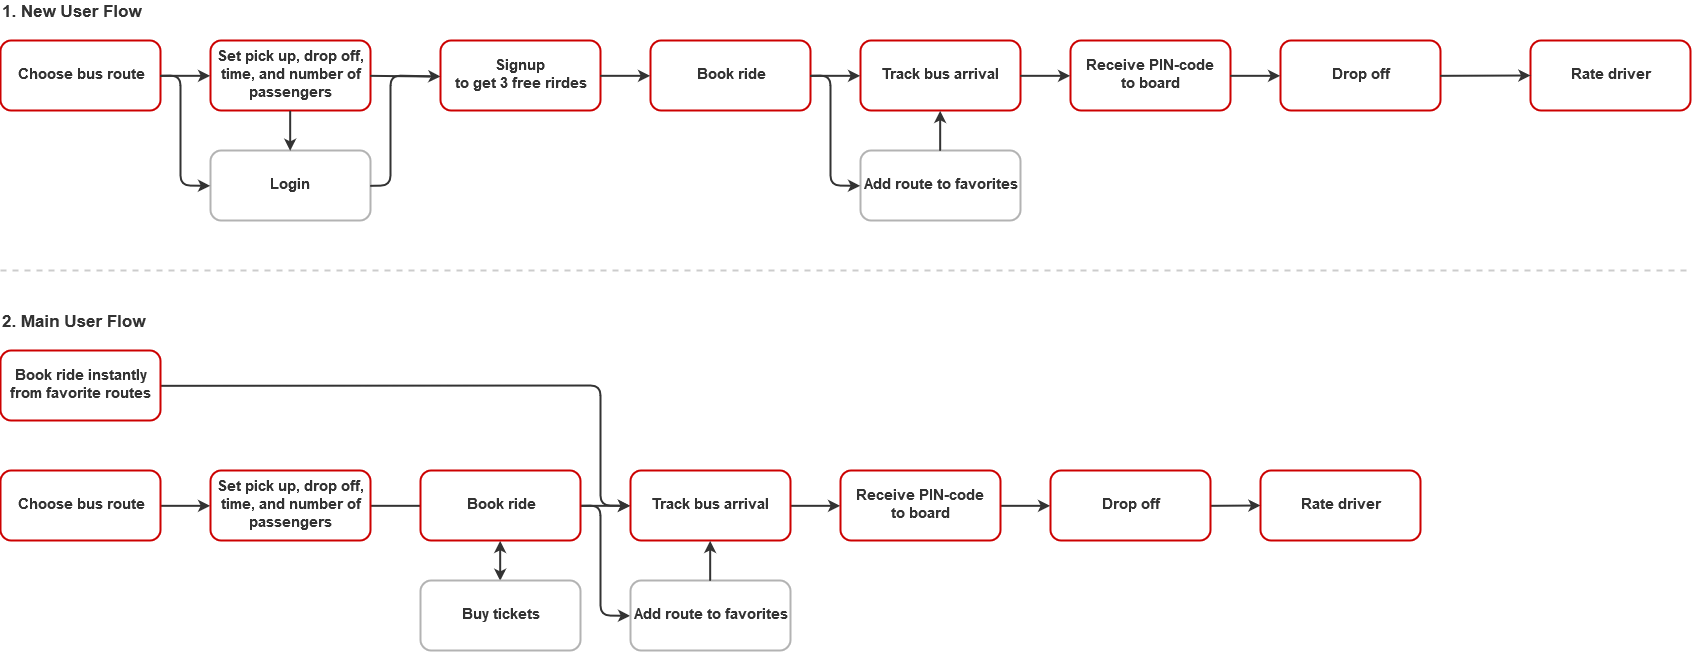 User flow examples for Niftie